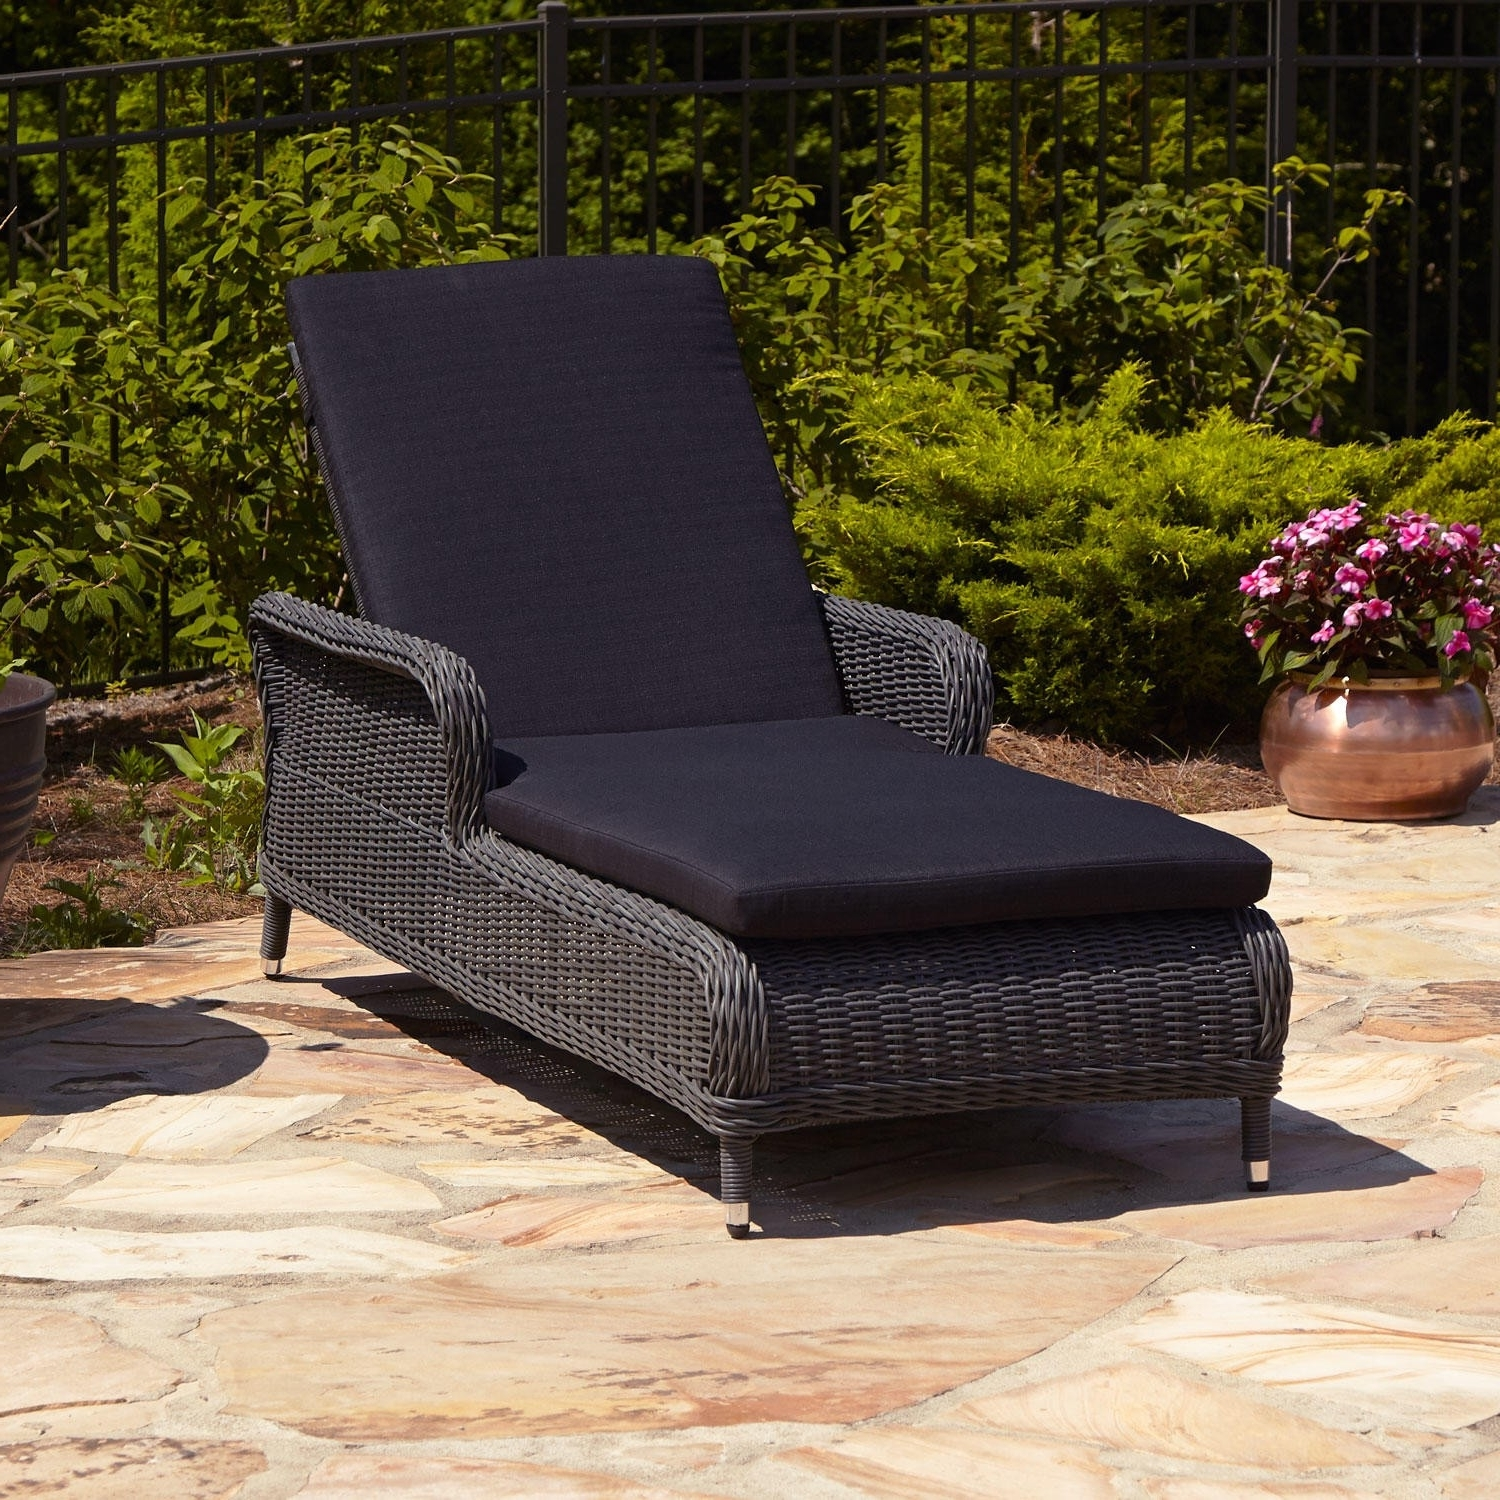 Outdoor Pool Furniture Chaise Lounges Inside Well Known Remarkable Wicker Chaise Lounge Chair Gray Patio Furniture All (View 7 of 15)